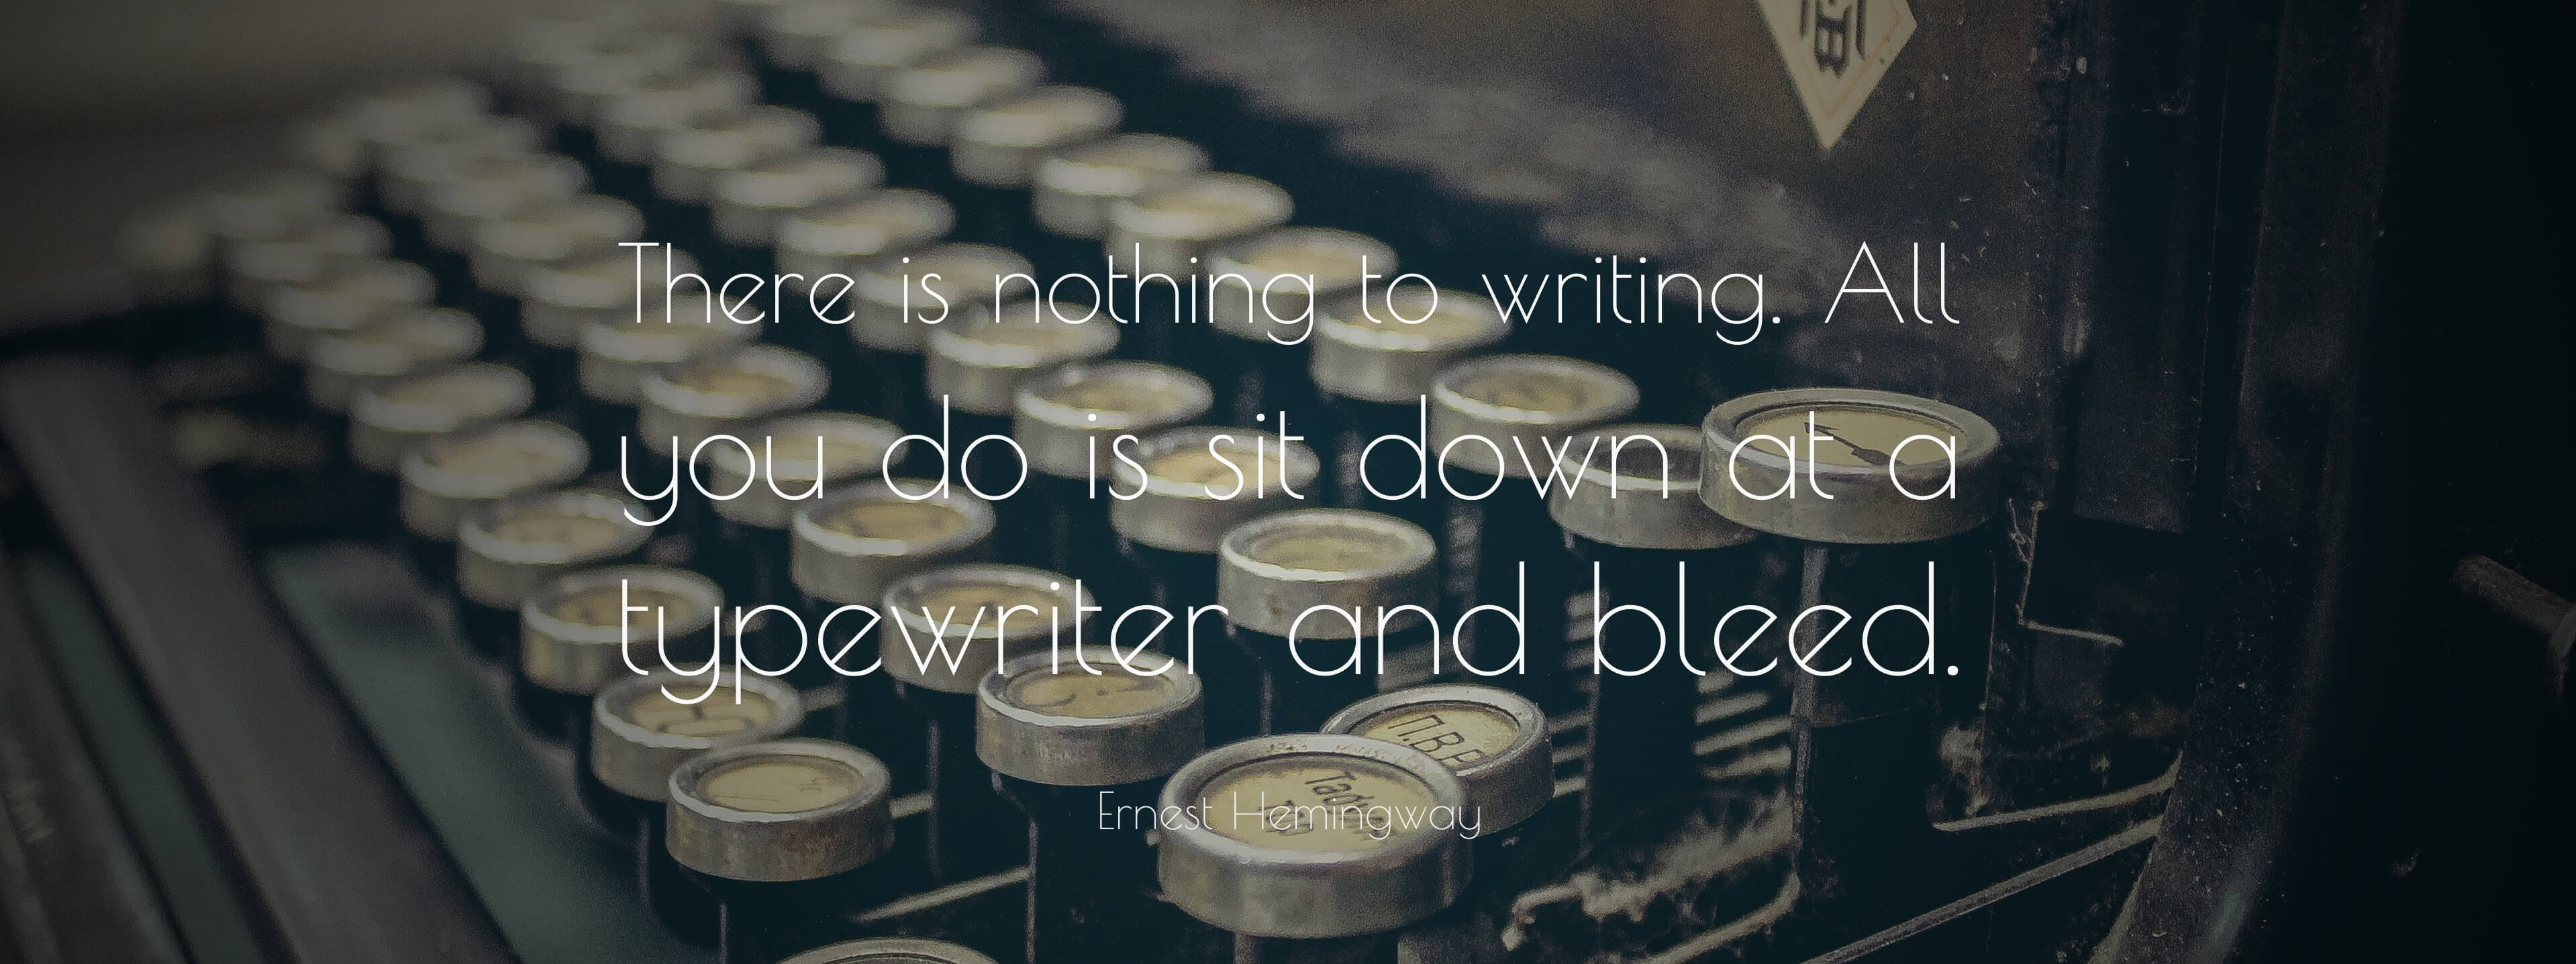 there-is-nothing-to-writing.-All-you-do-is-sit-down-at-a-typewriter-and-bleed.-ernest-hemingway-quotes